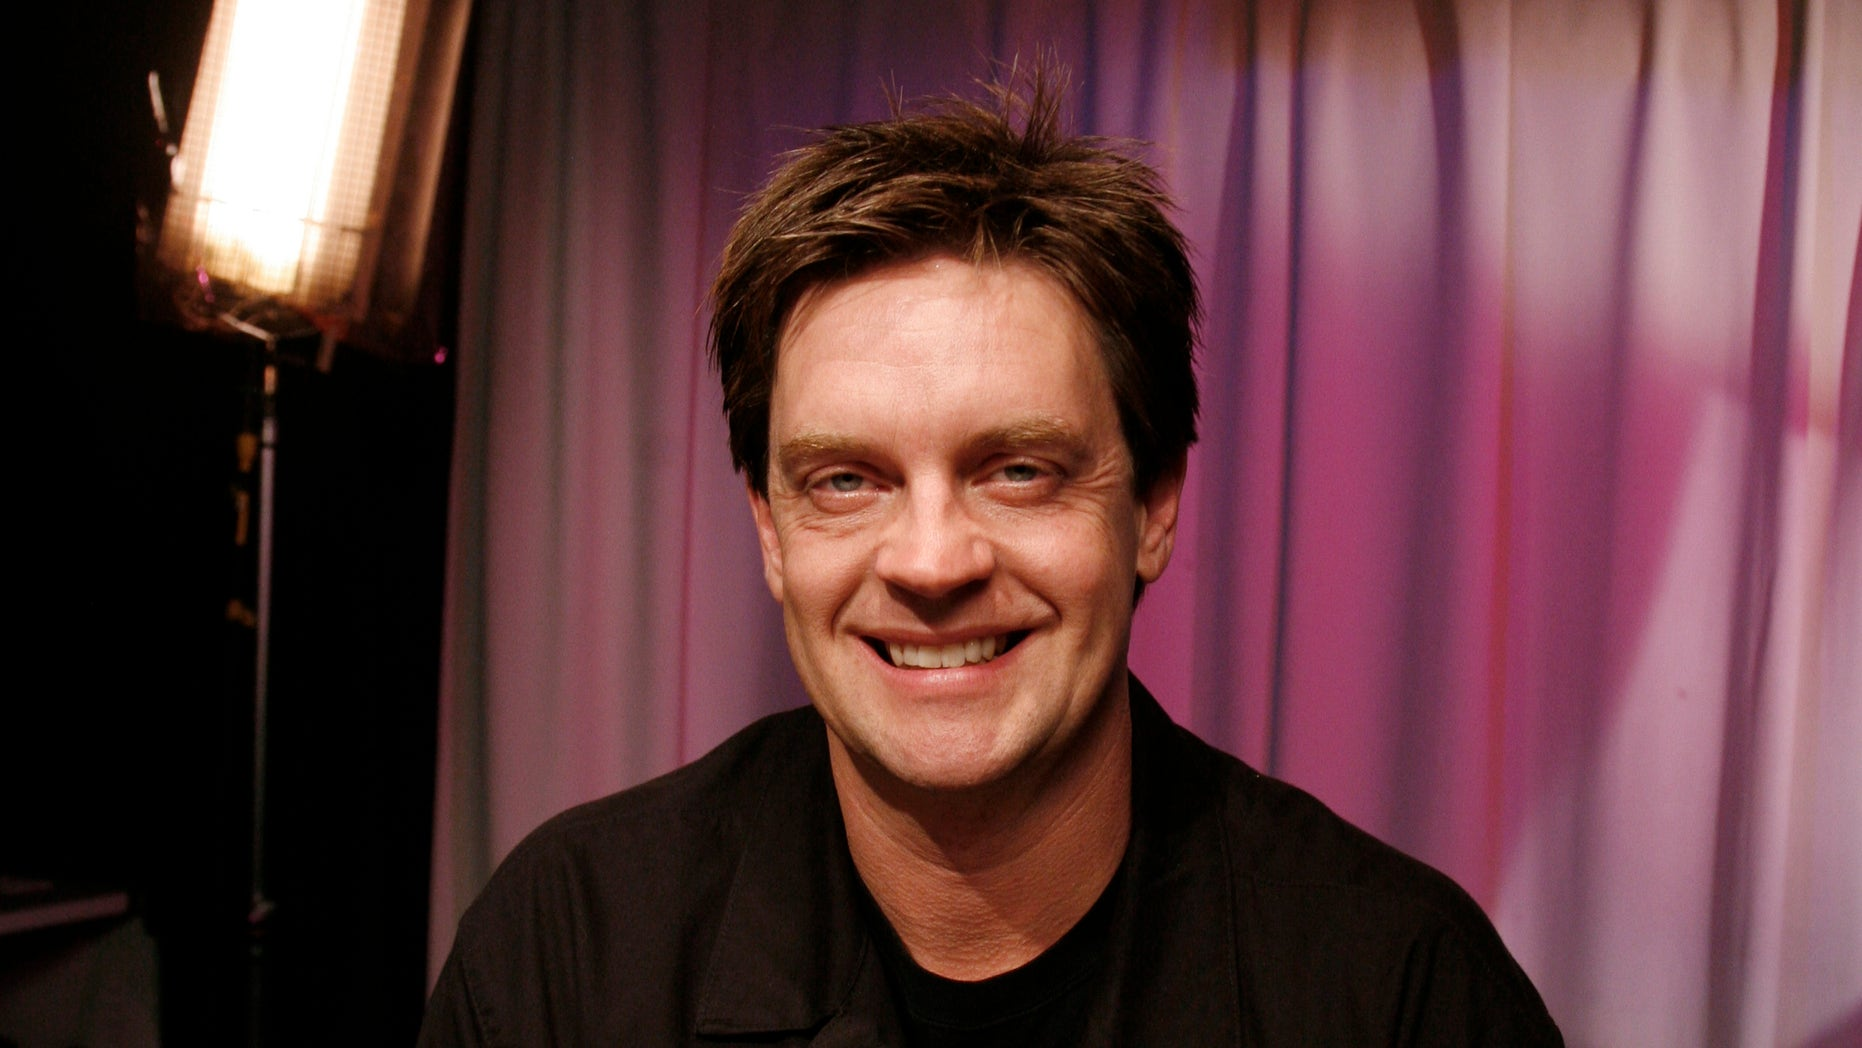 Oct. 4, 2010. Comedian Jim Breuer poses for a portrait in New York.